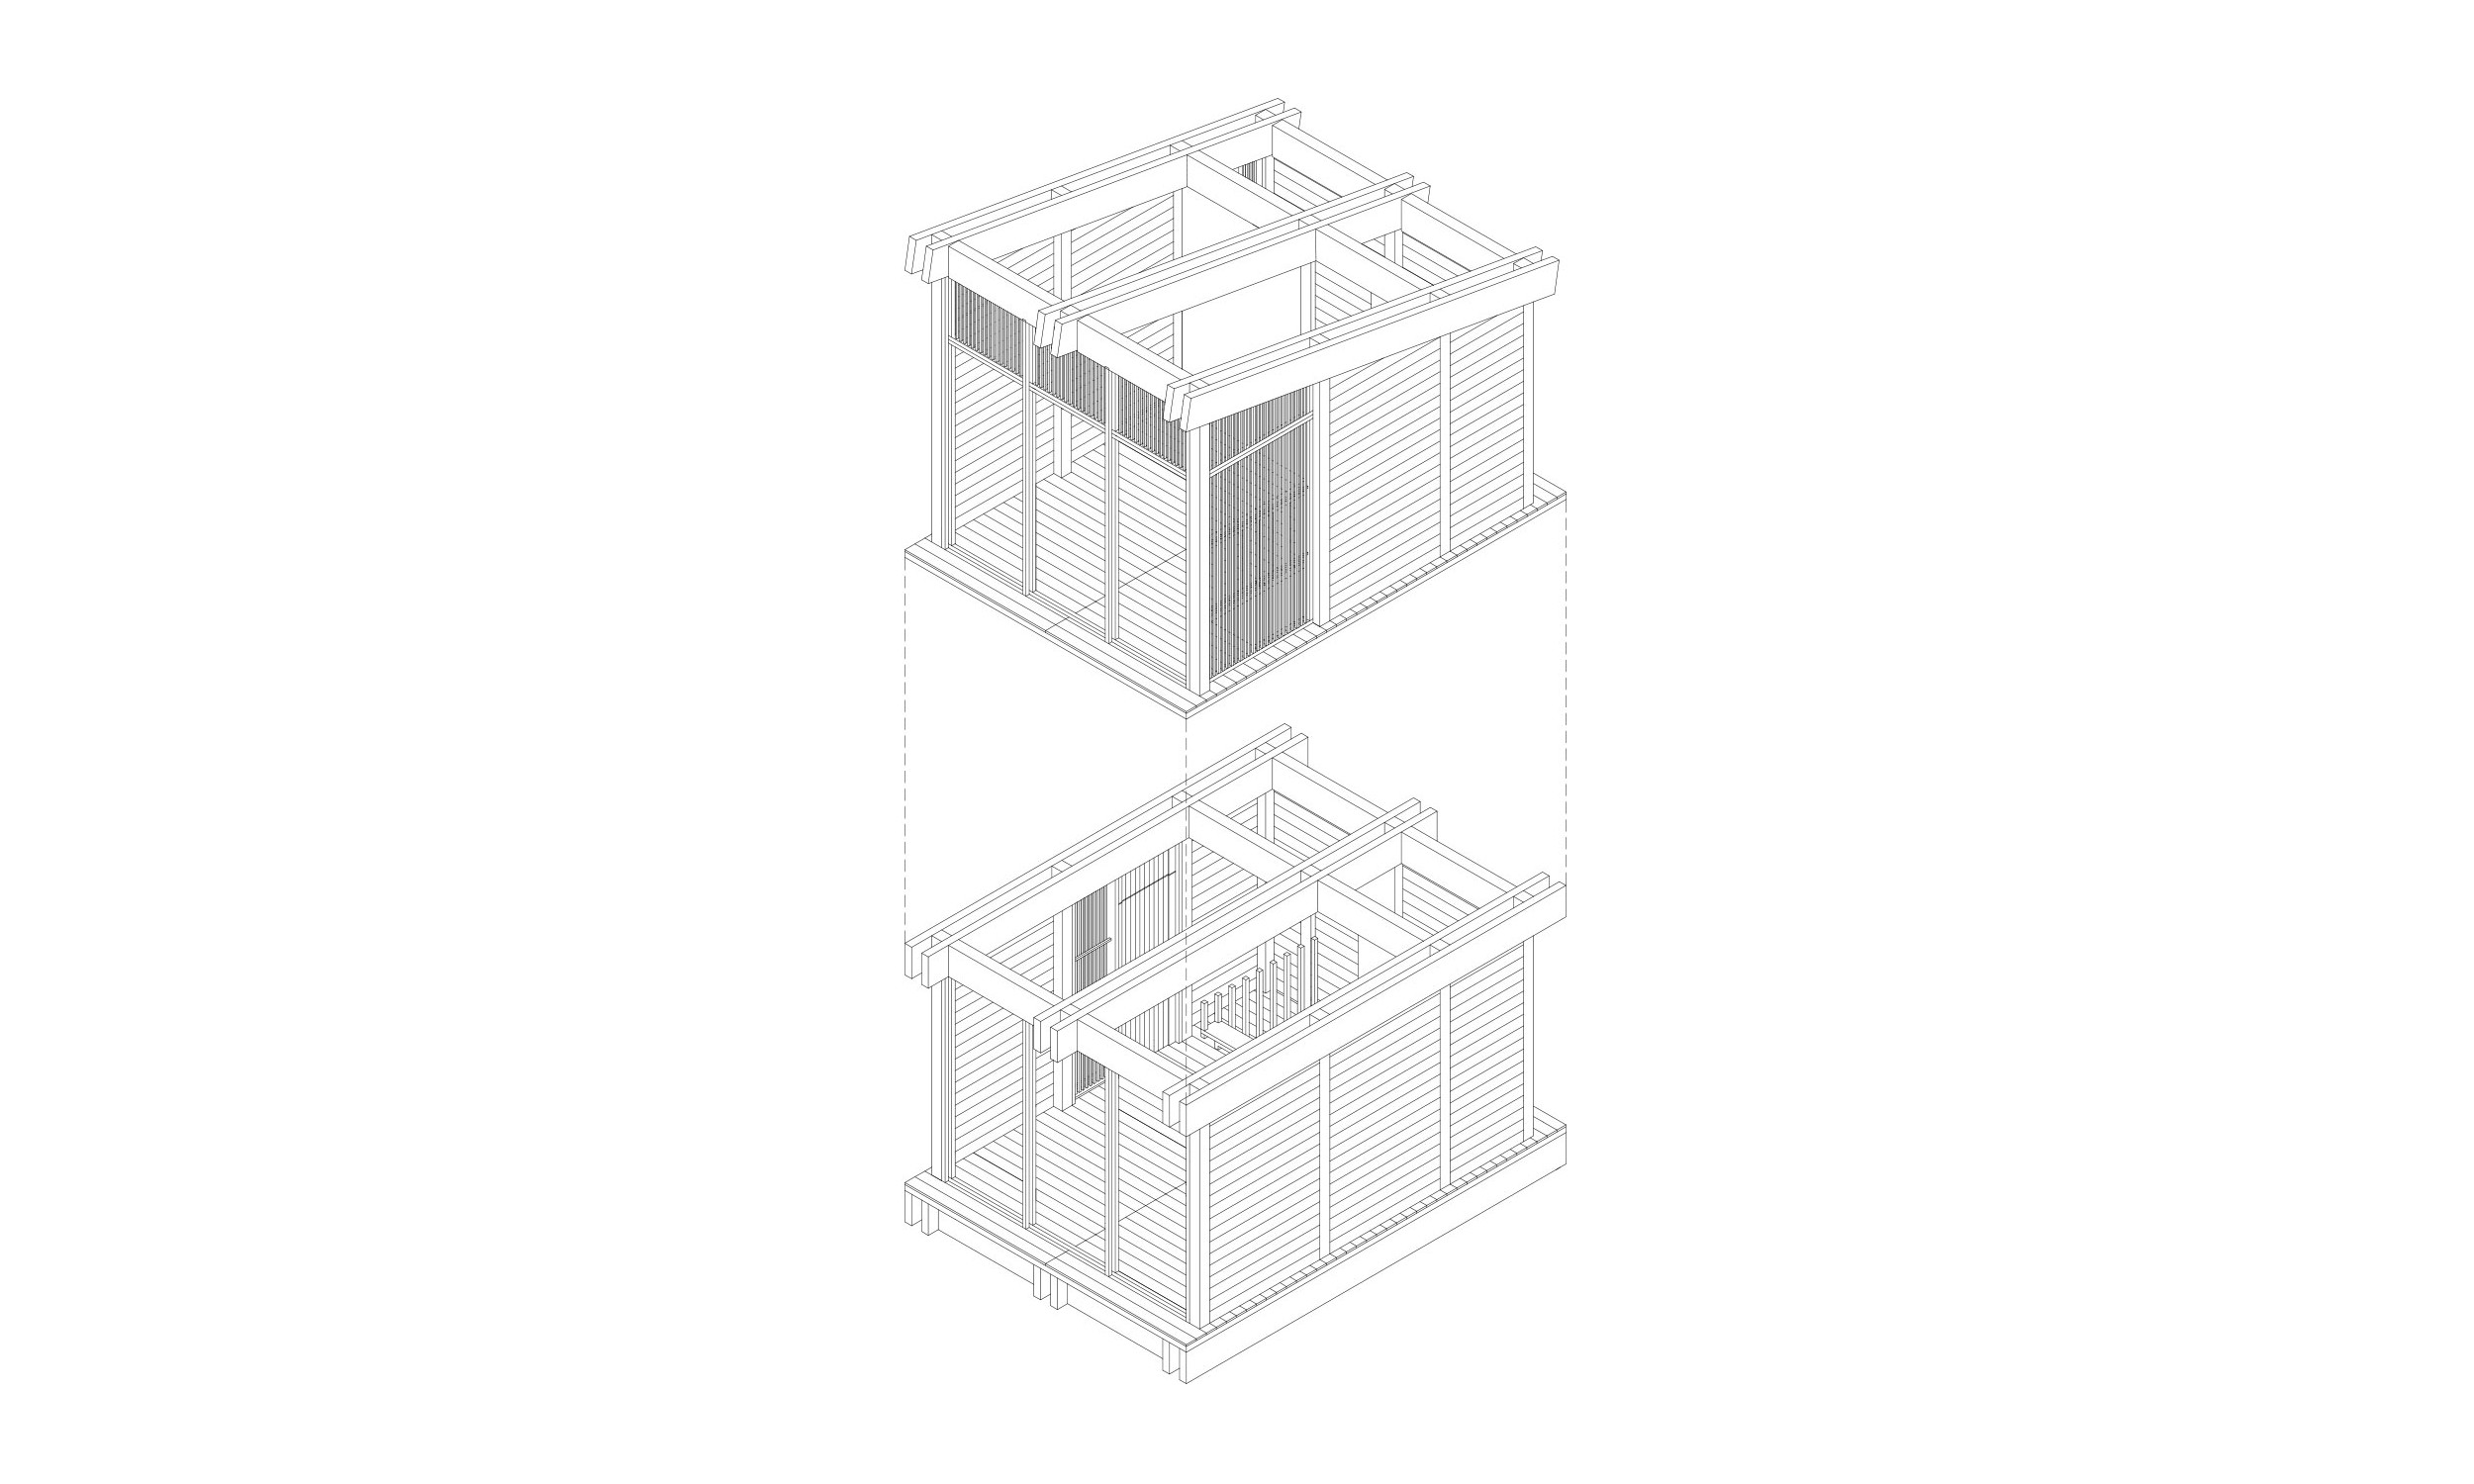 main_office_wooden_cabins_axonometry_4